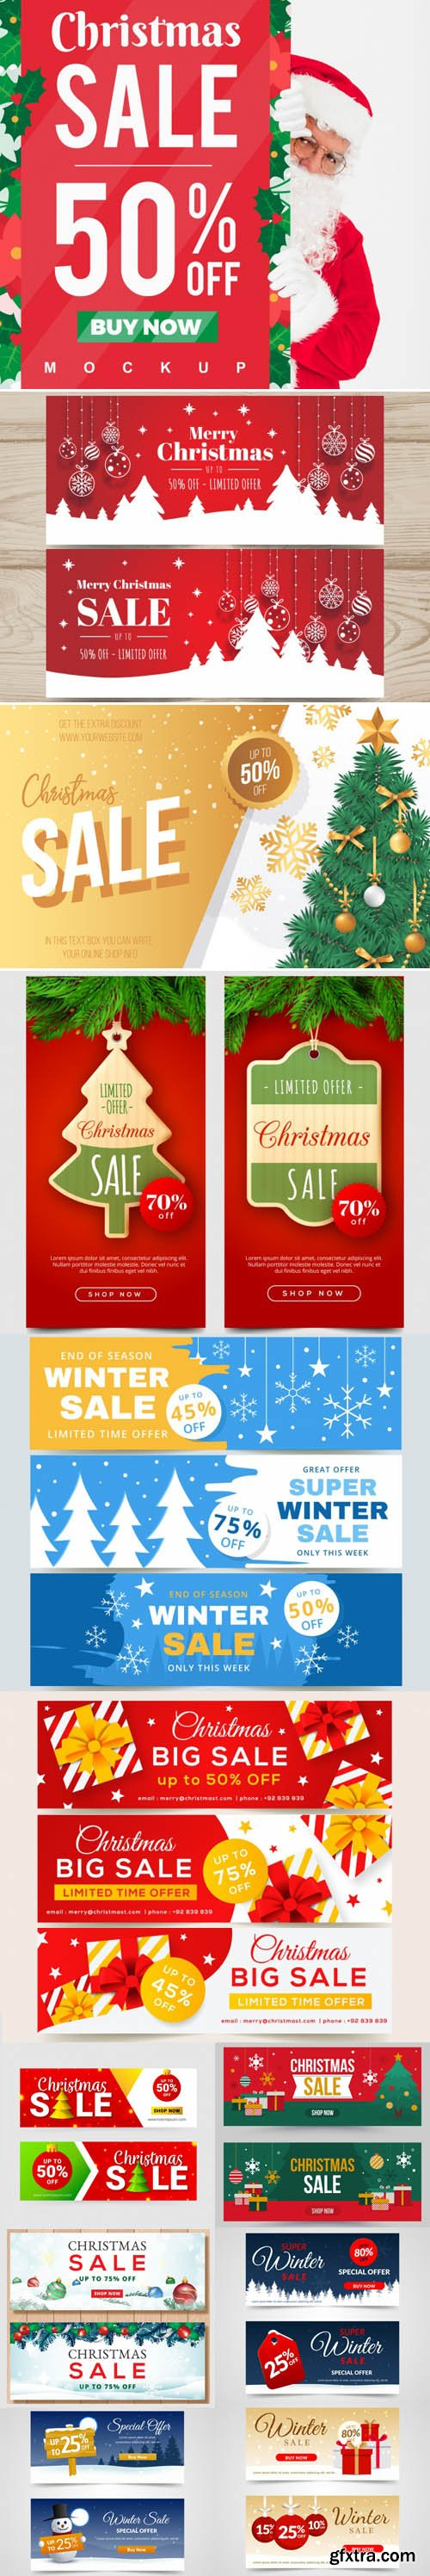 Holiday & Christmas Sales Vector Bundle 7